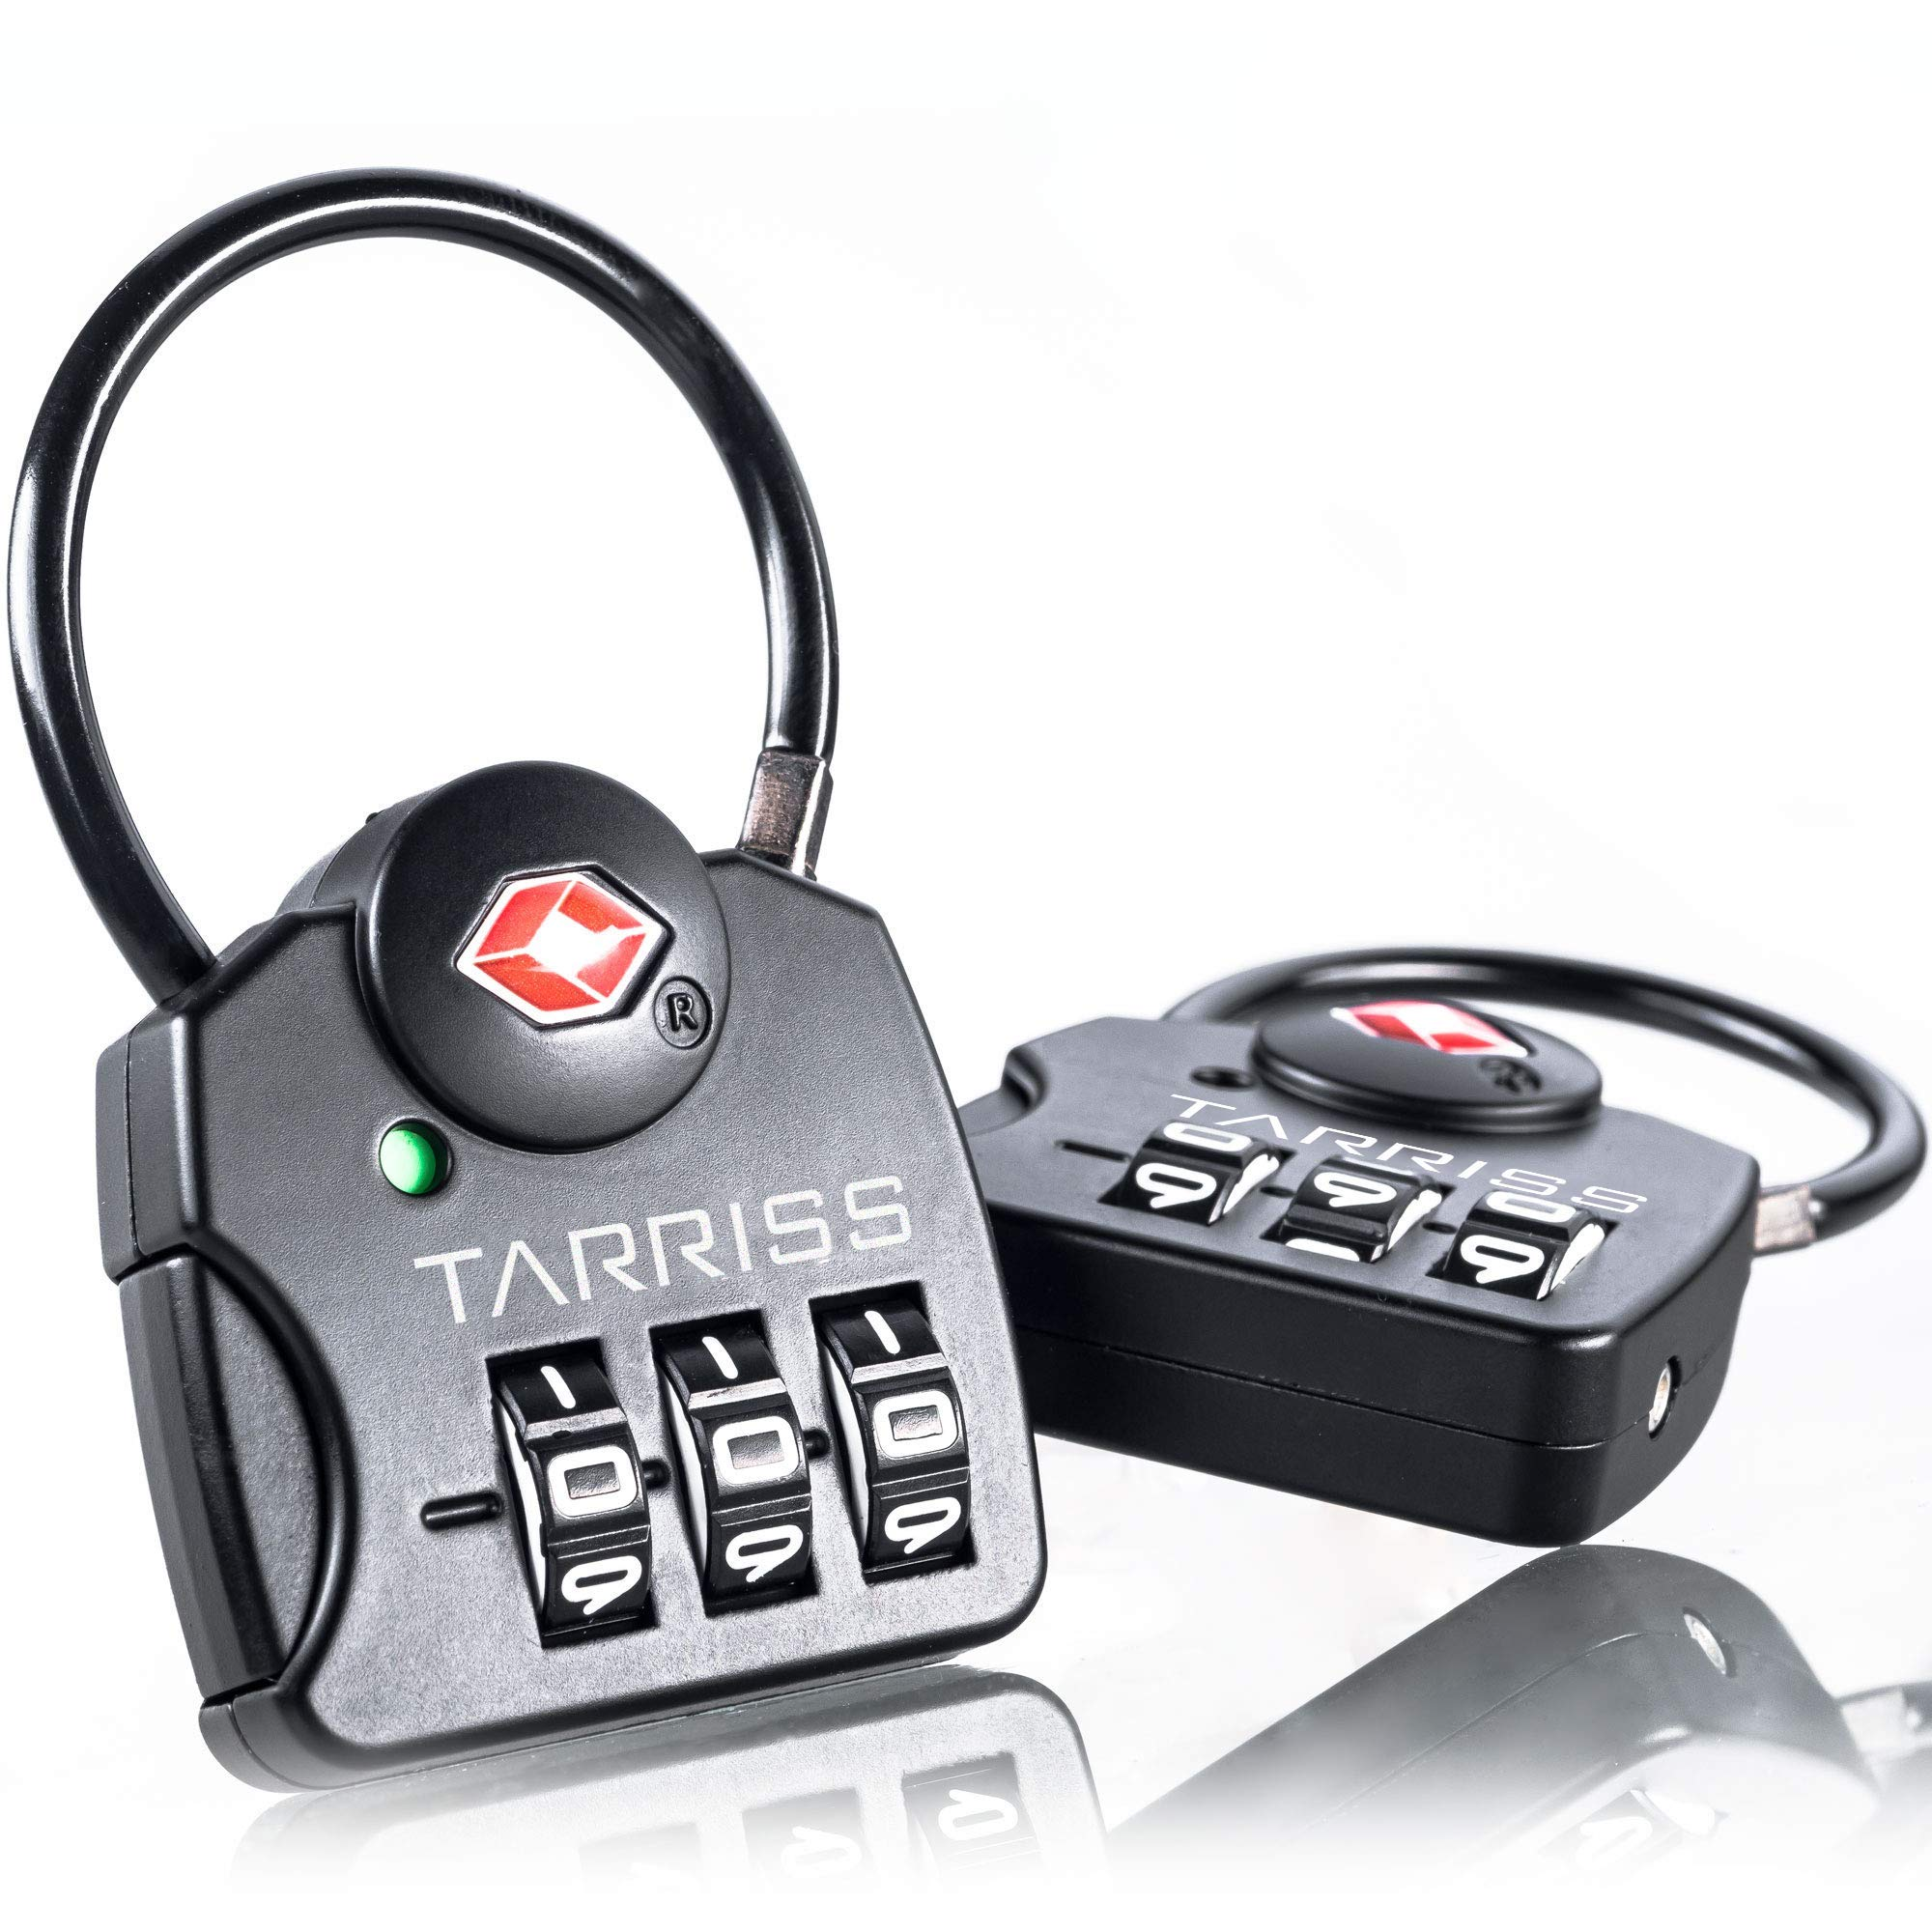 Tarriss TSA Lock with SearchAlert (2 Pack) (Midnight Black)